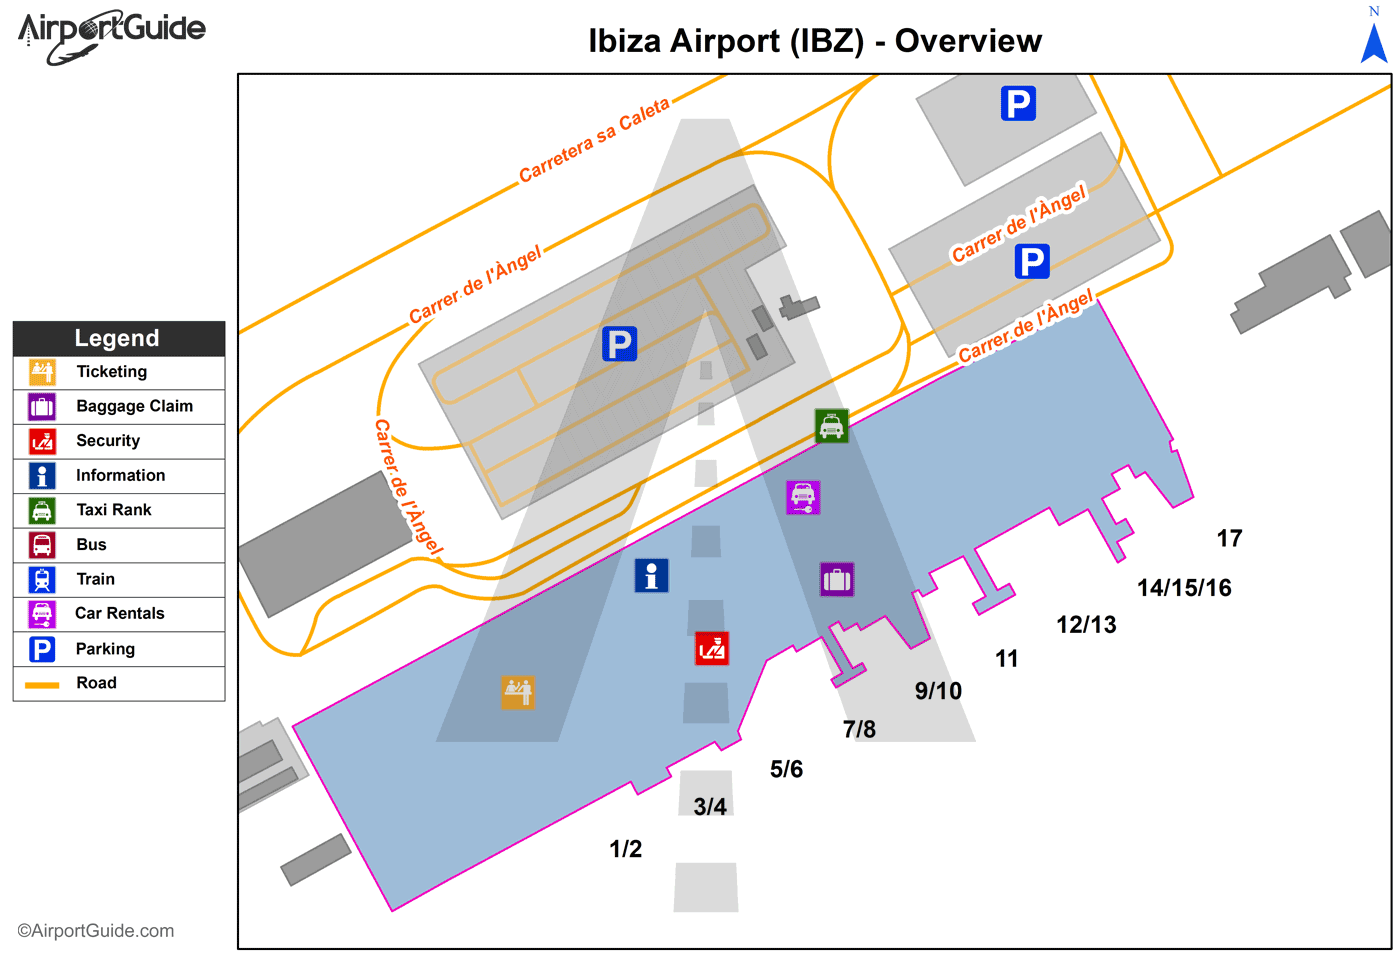 Ibiza - Ibiza (IBZ) Airport Terminal Map - Overview